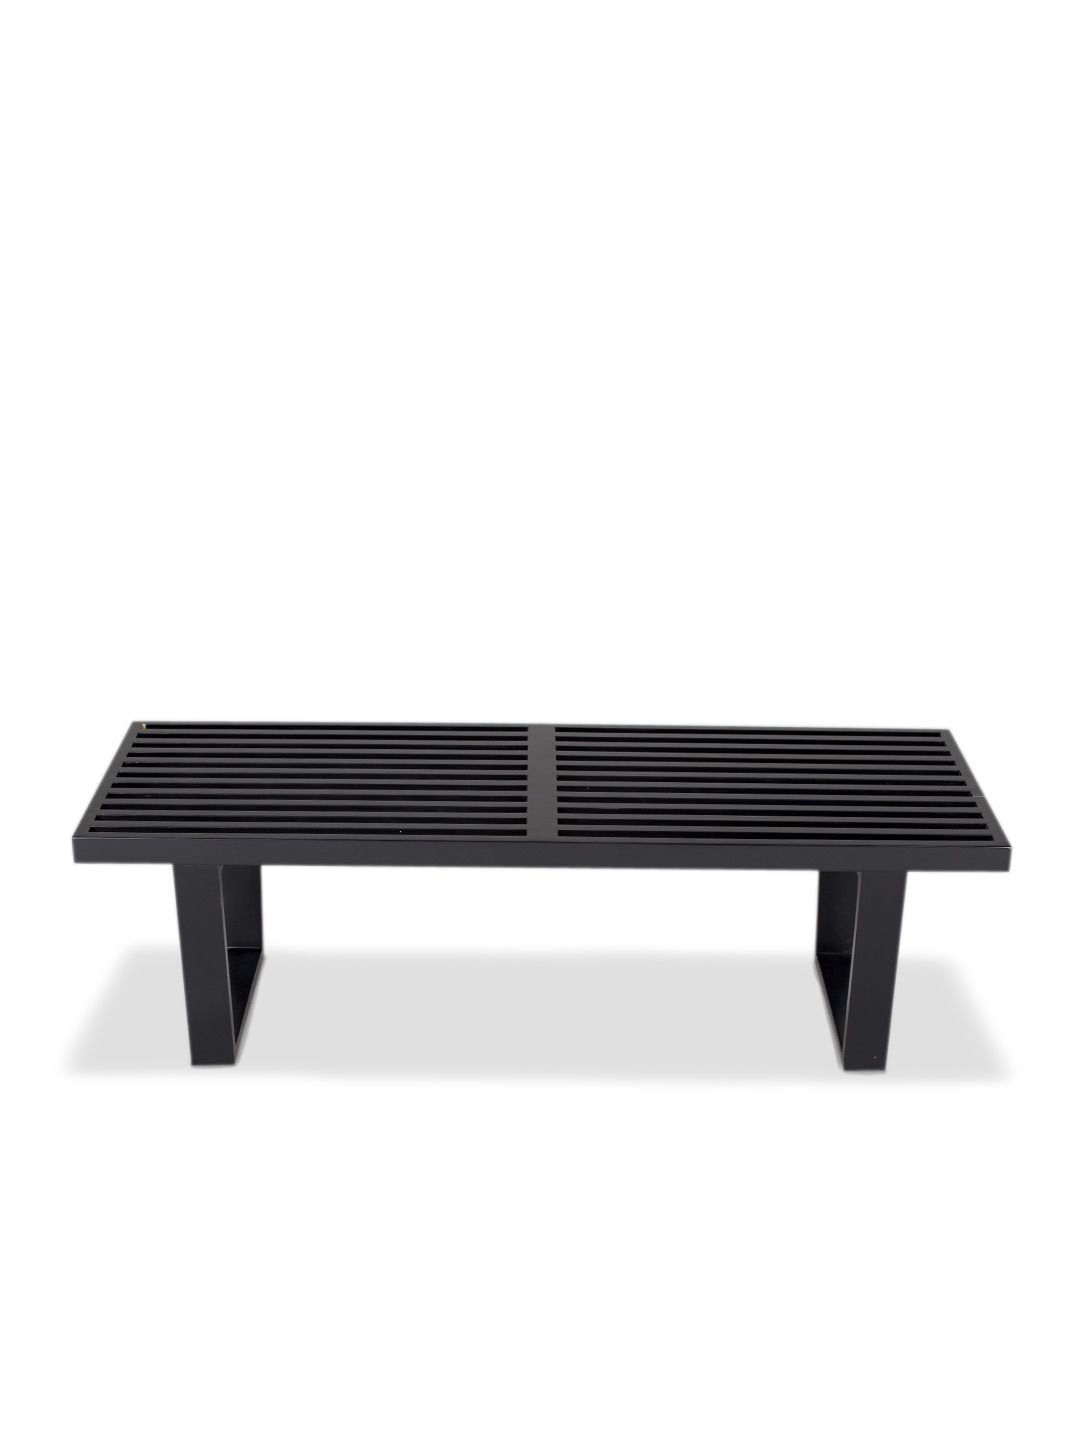 Slatted Bench Black (4 Ft) By Pangea Home At Gilt